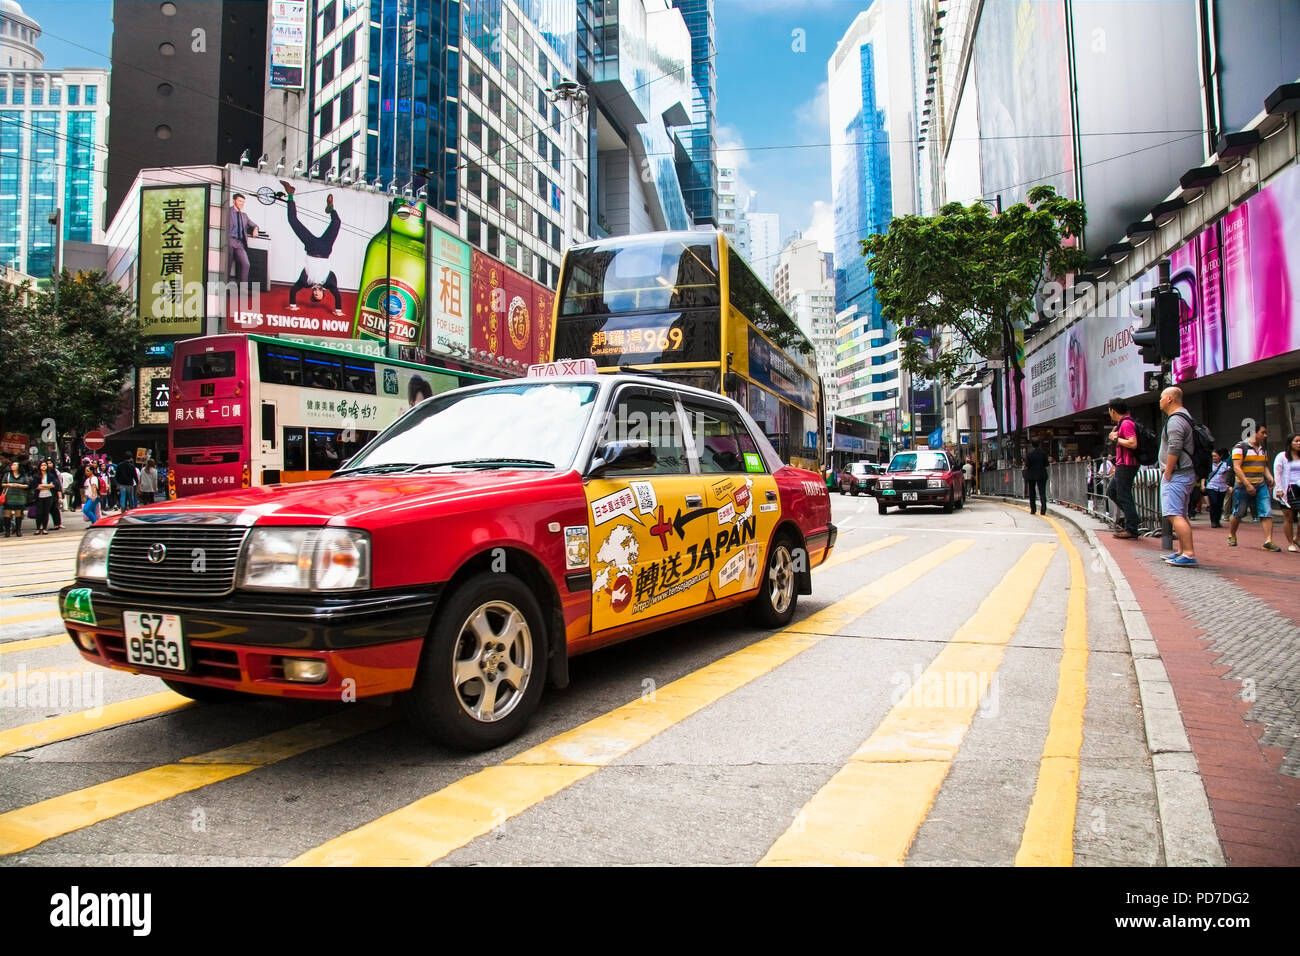 HONG KONG -  APR 3, 2016: Urban red taxi in Hong Kong urban landscape on Apr 3, 2016. Hong Kong is an autonomous territory on the Pearl River Delta of - Stock Image